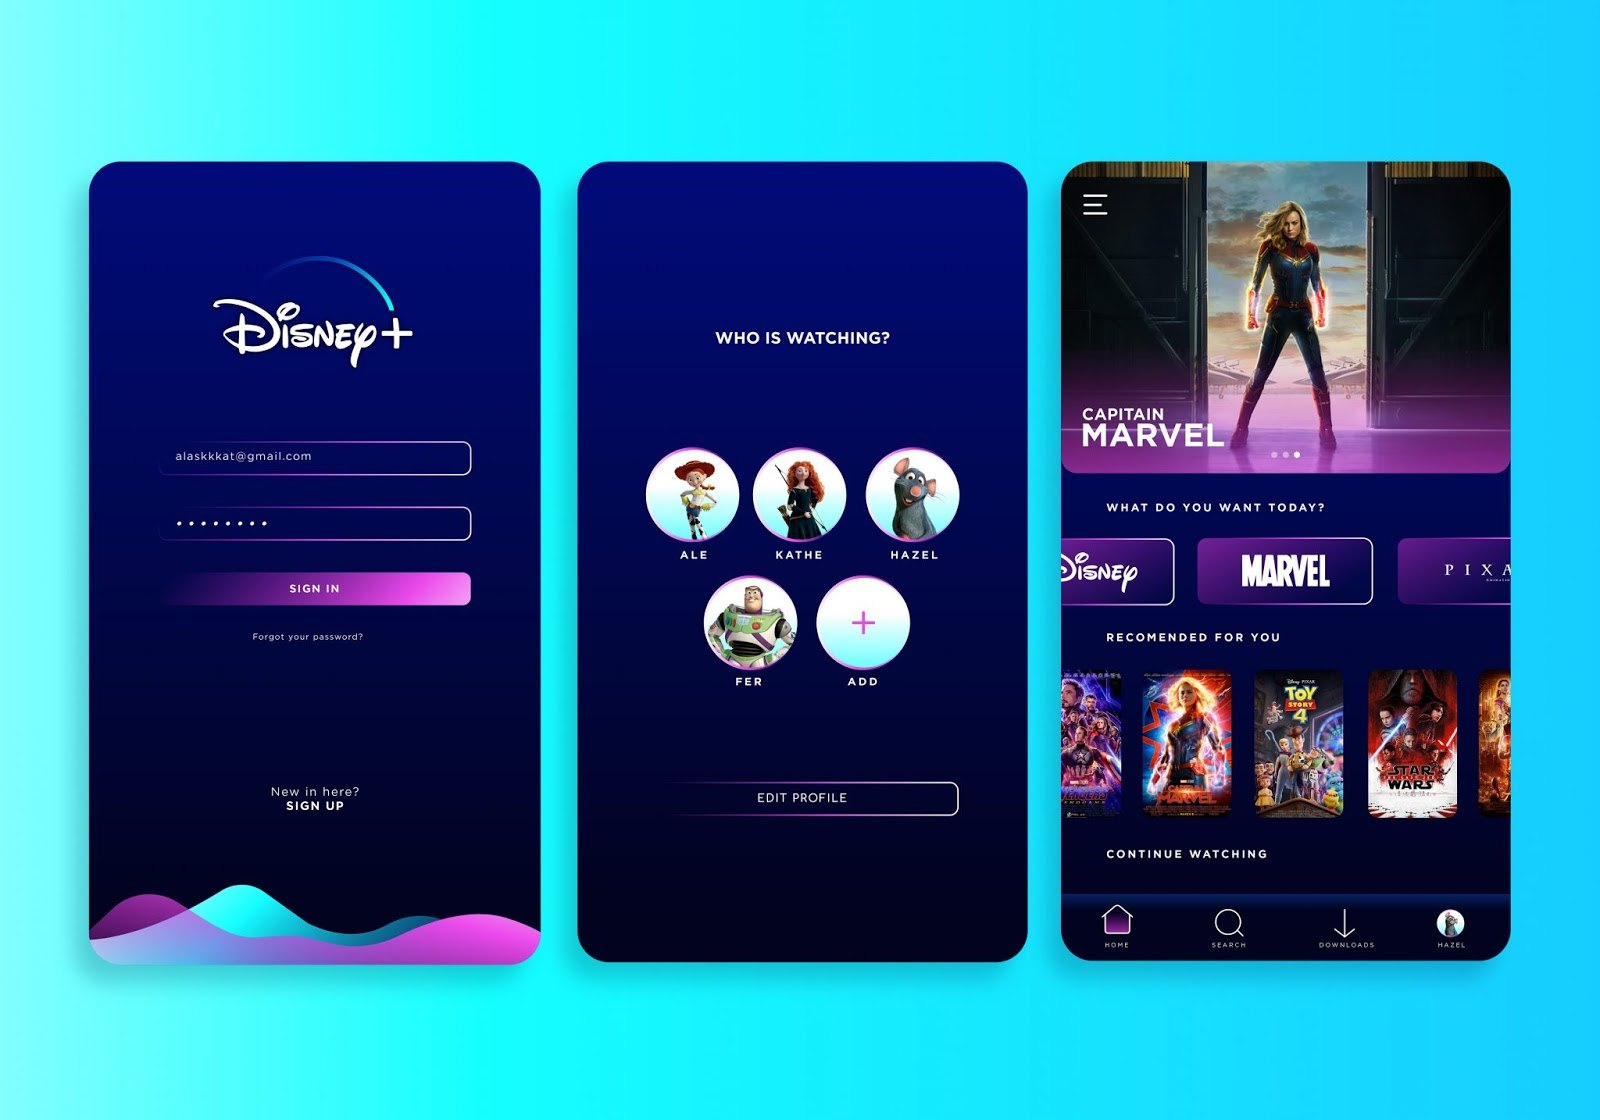 Learn How to Watch the Best Movies from the Disney+ App